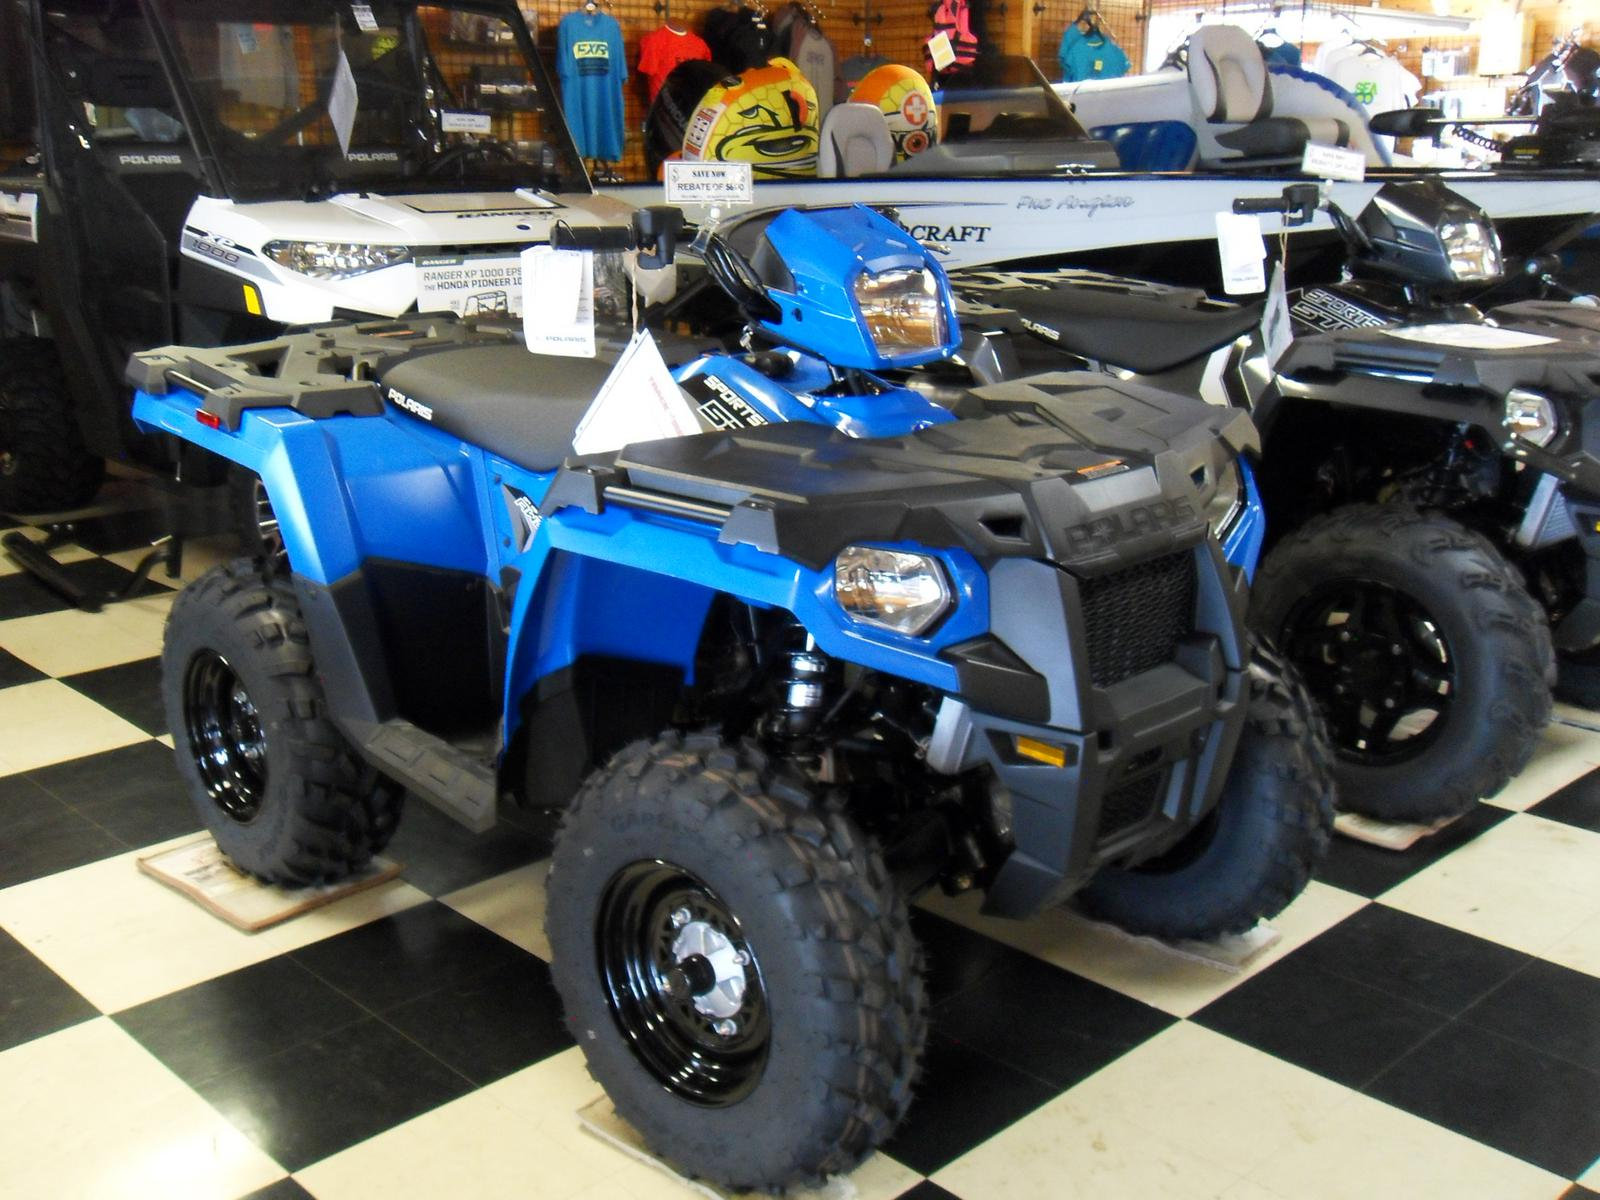 2019 Polaris Industries Sportsman® 570 - Velocity Blue for